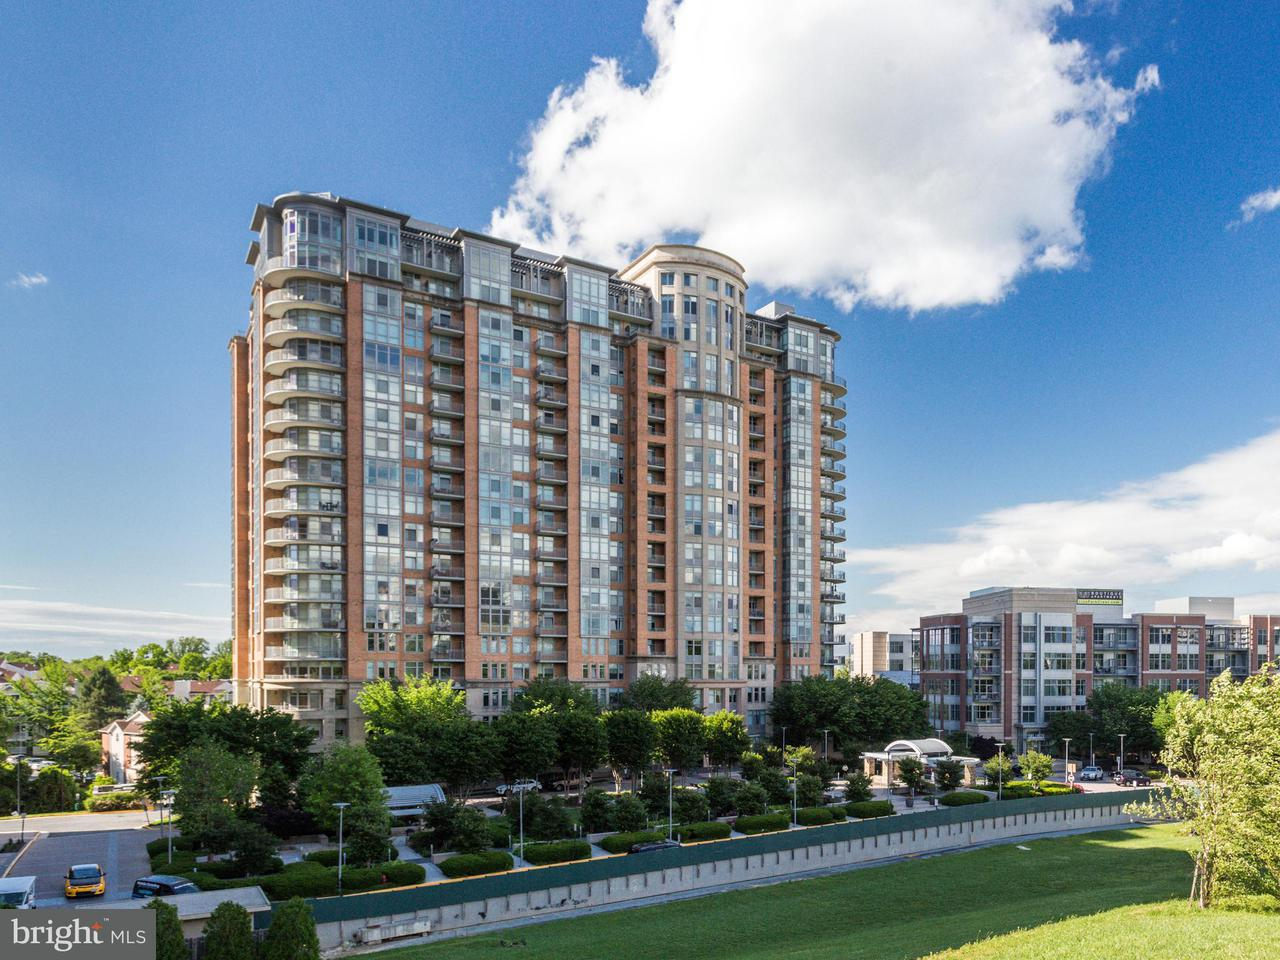 Condominium for Sale at 8220 CRESTWOOD HEIGHTS DR #905 8220 CRESTWOOD HEIGHTS DR #905 McLean, Virginia 22102 United States